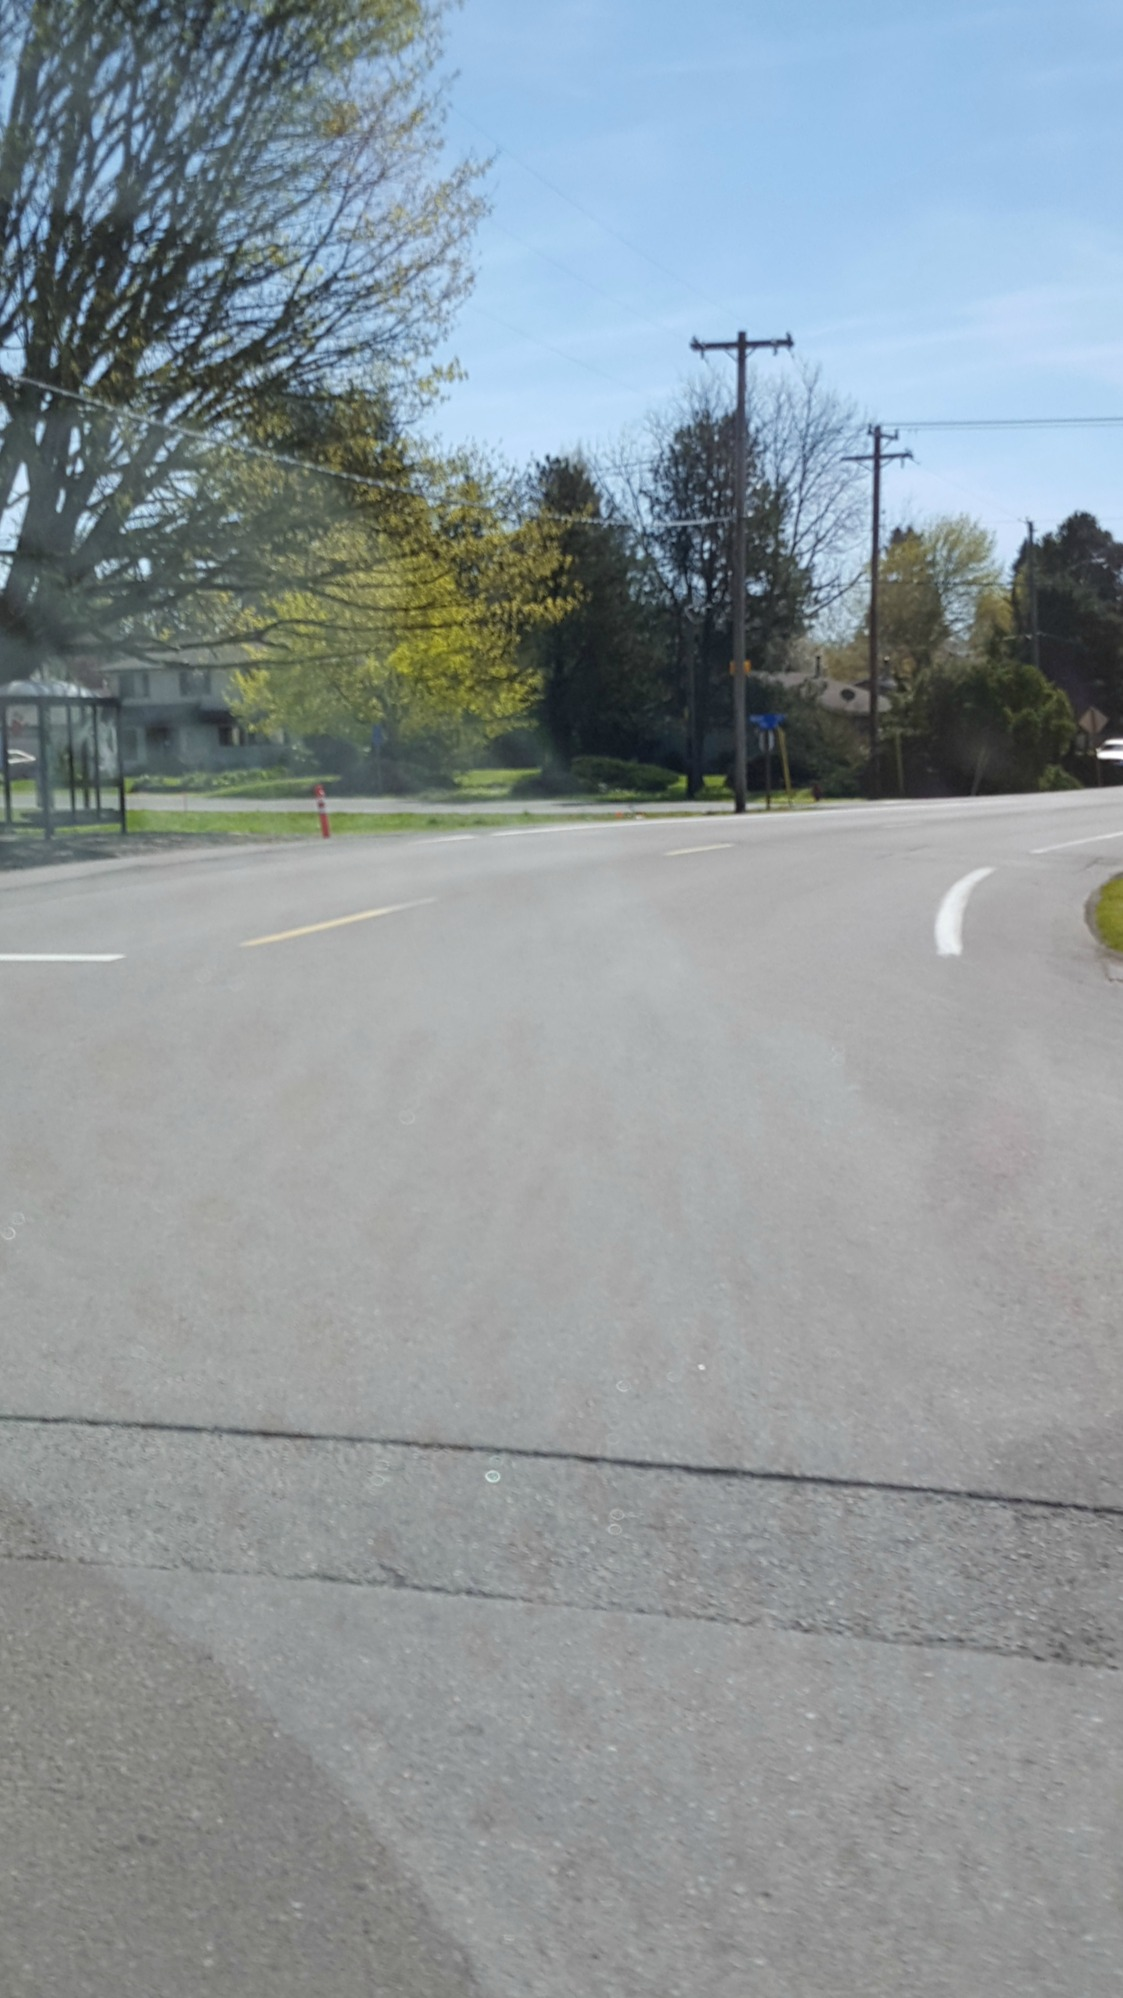 pic of road son ran onto